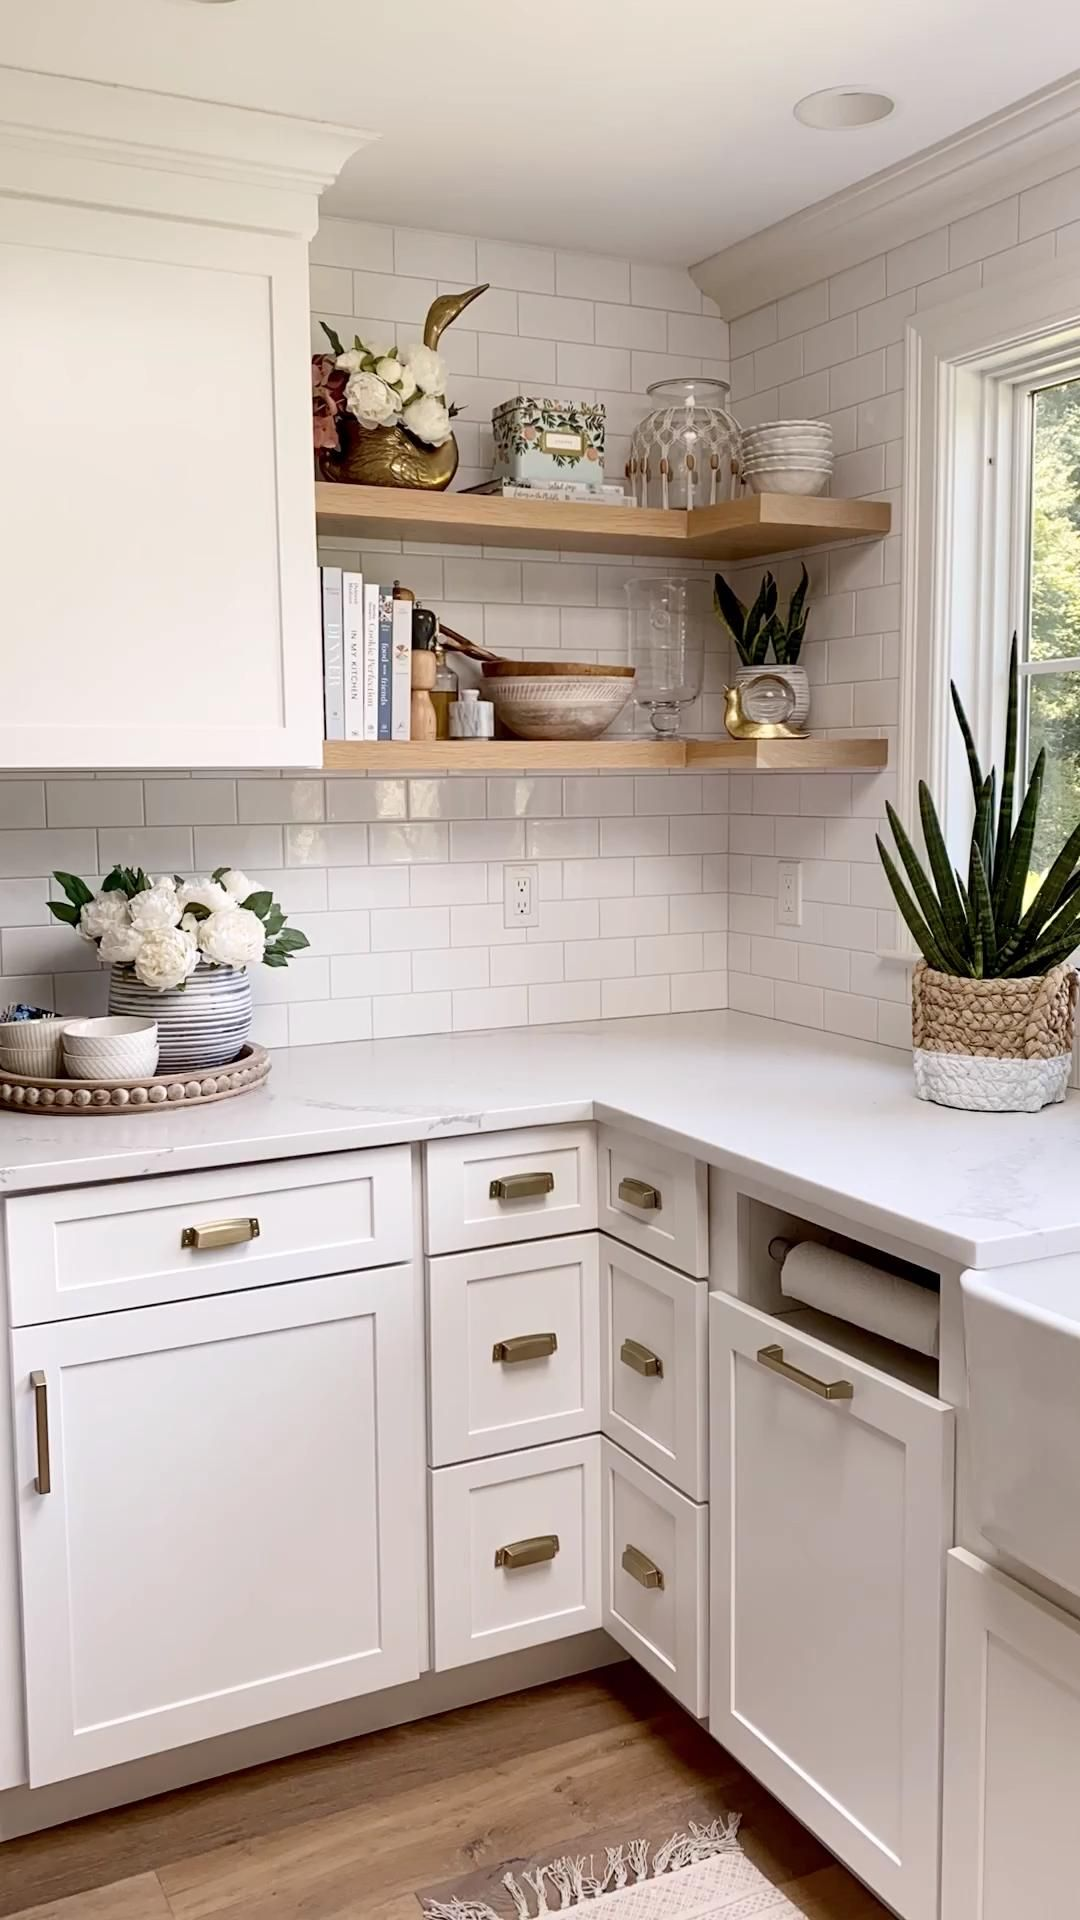 These corner drawers are one of my favorite things we decided on during our kitchen renovation! Get all the details of our reno and see the